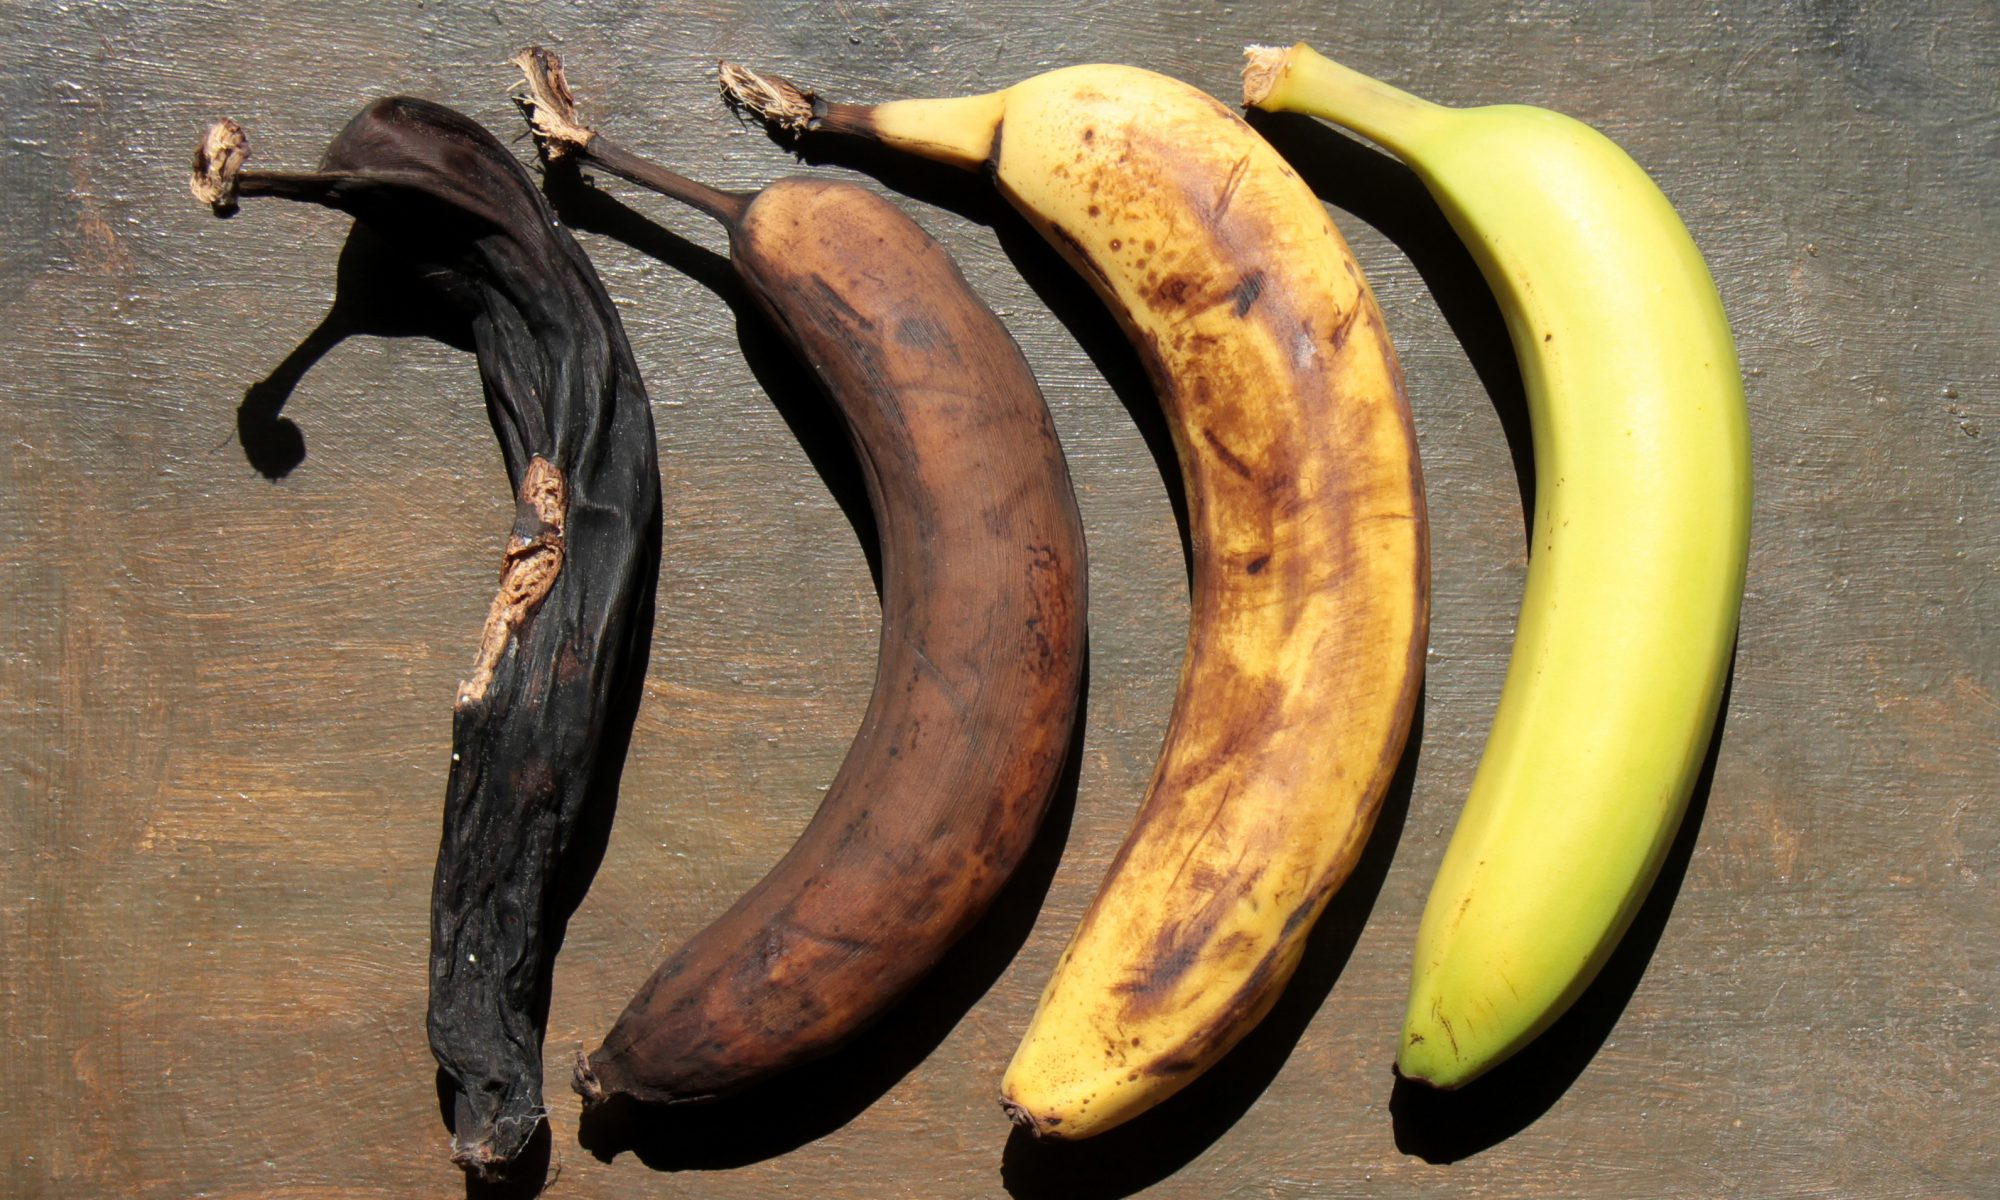 EC: Brown Bananas Are Healthier Than You Think